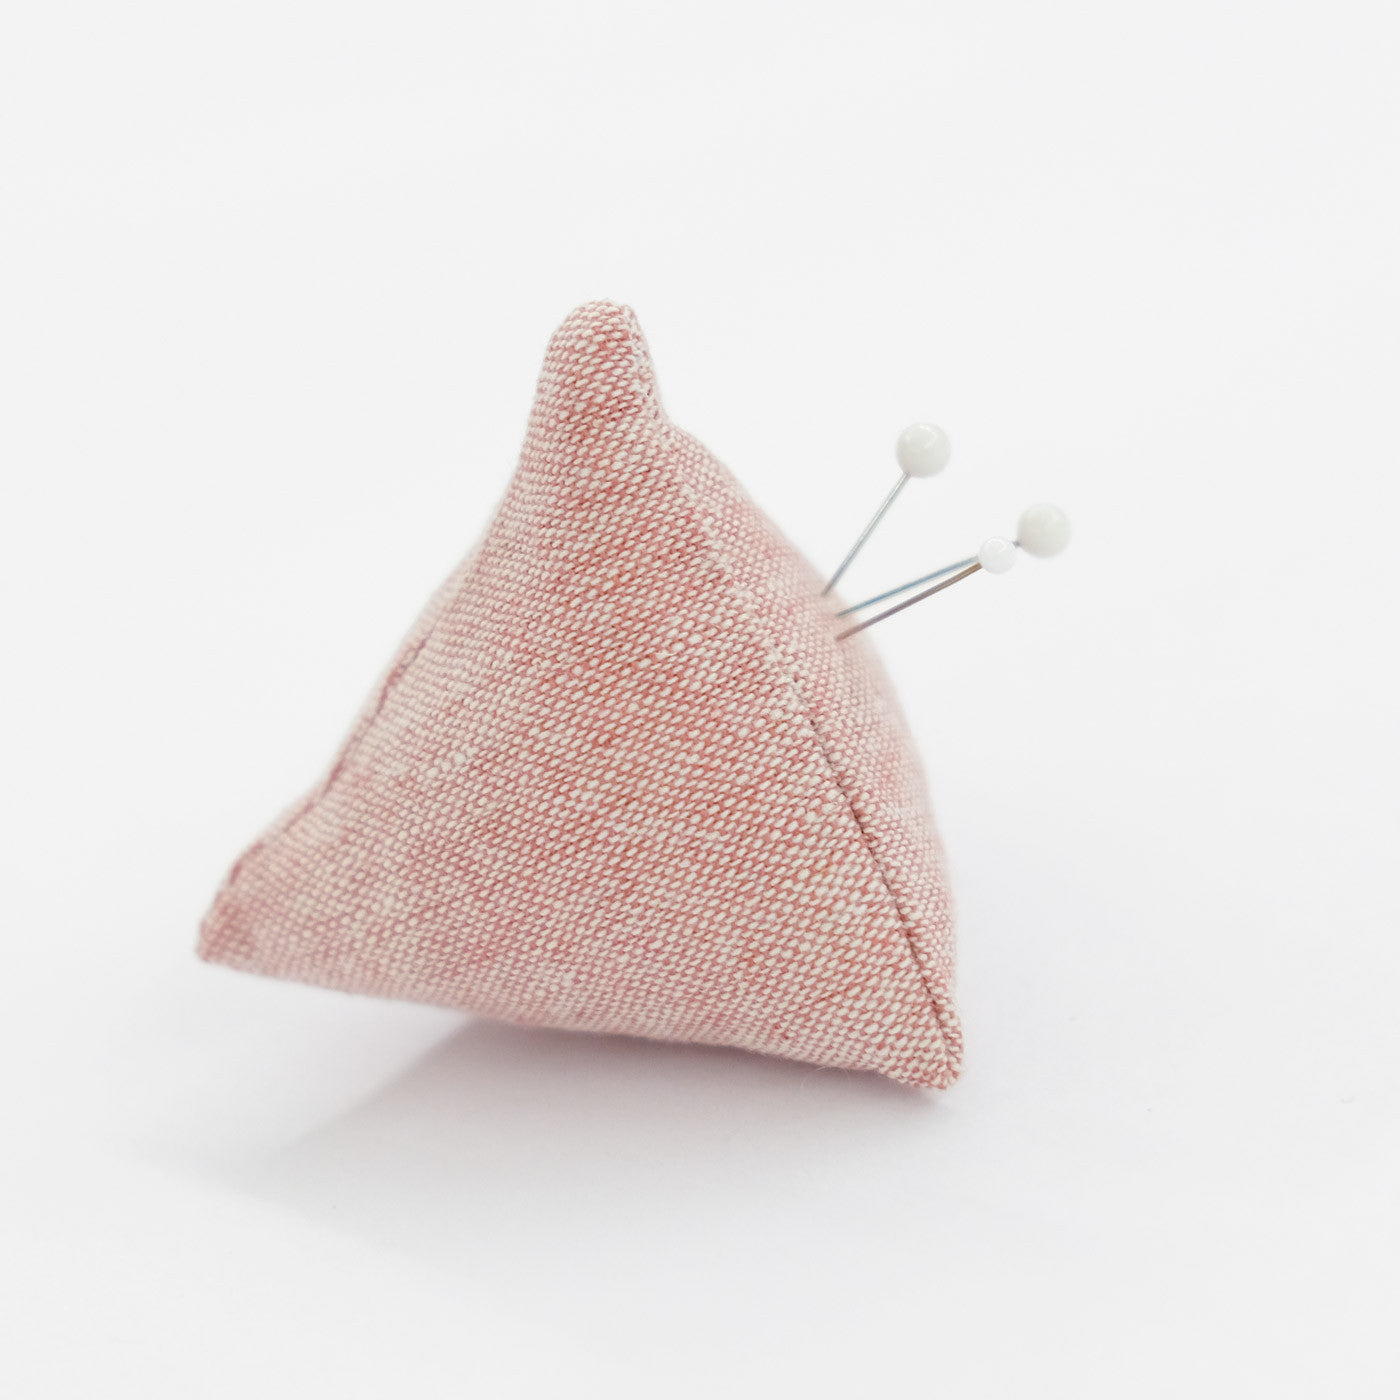 Finished Triangle Pin Cushion